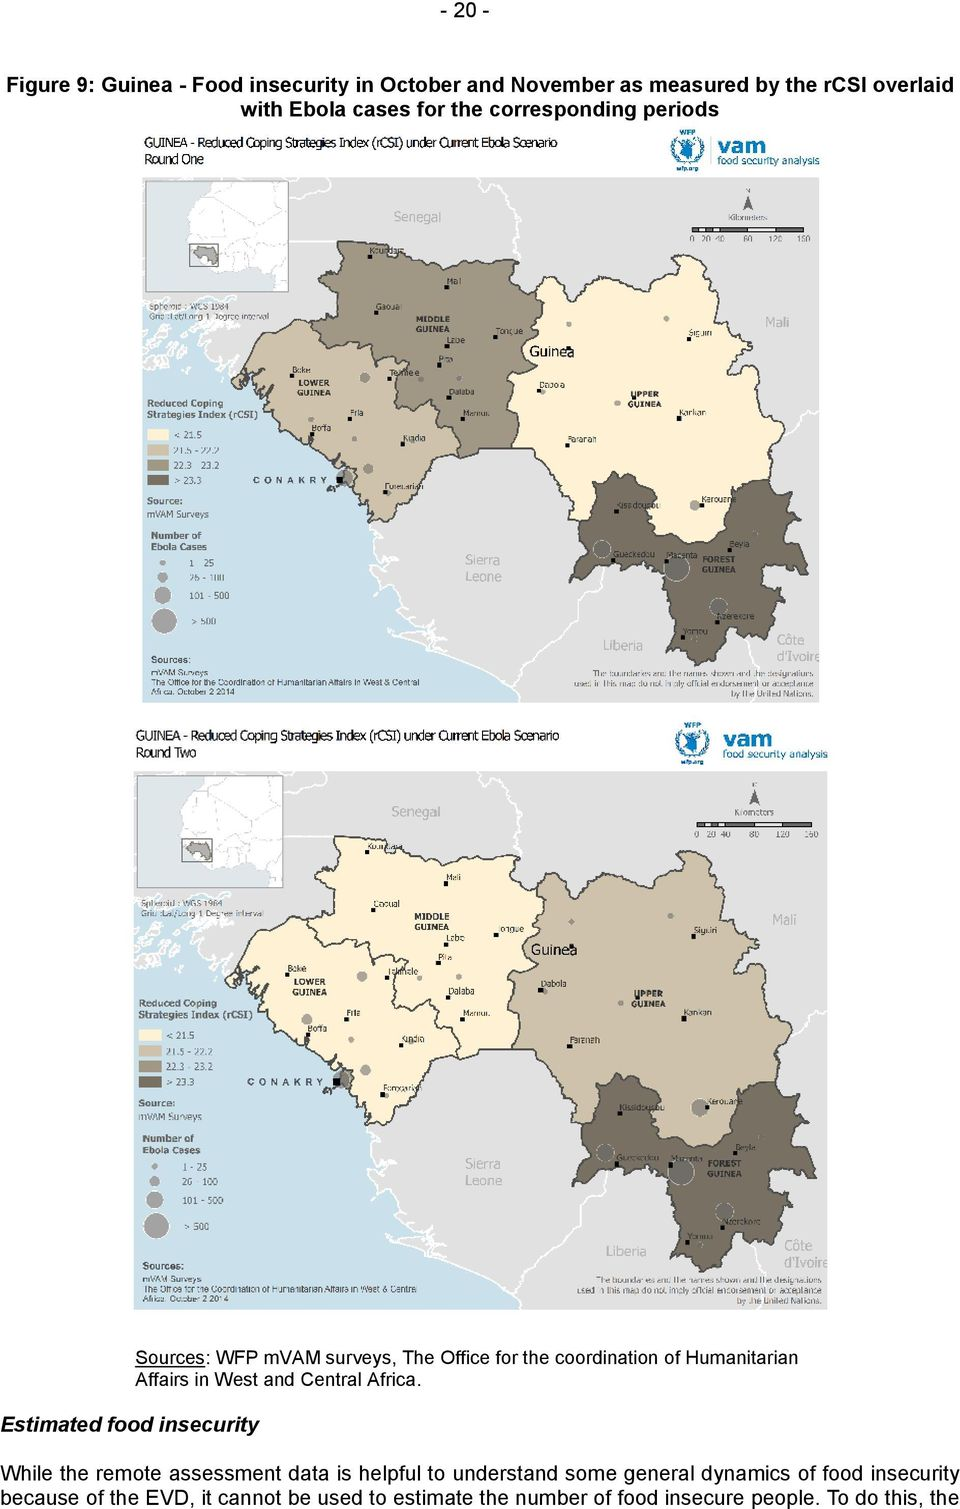 Humanitarian Affairs in West and Central Africa.